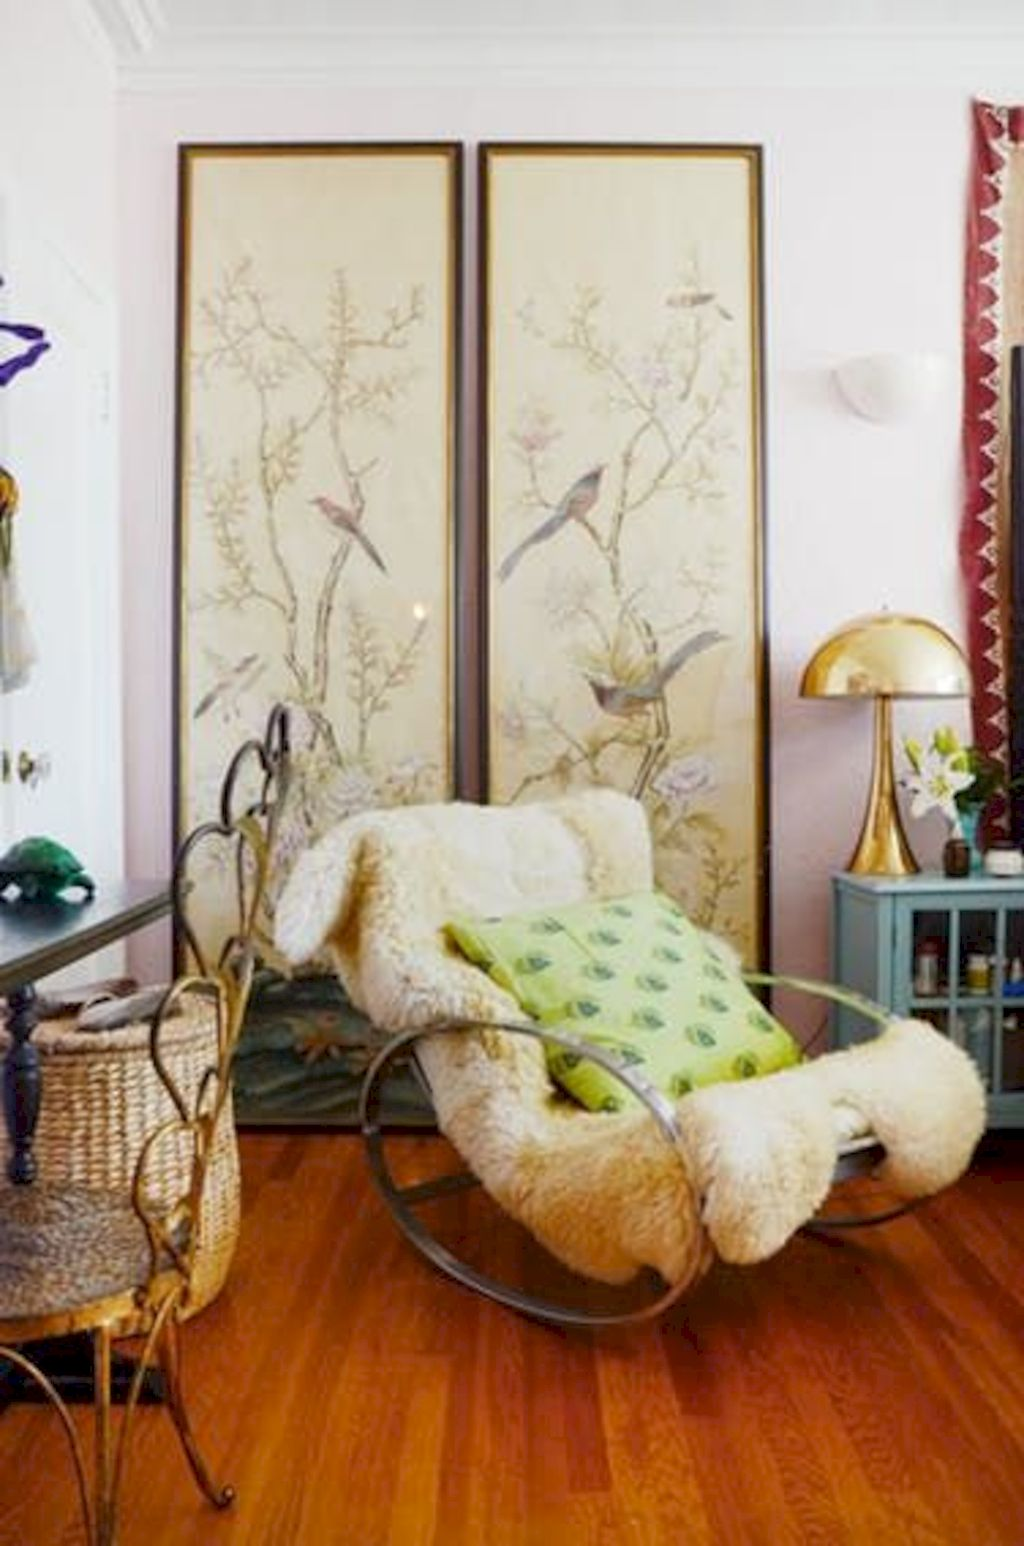 Artistic textile decorations with artsy pattern and print designs amazingly enhance wall display with strong eclectic home style Image 6